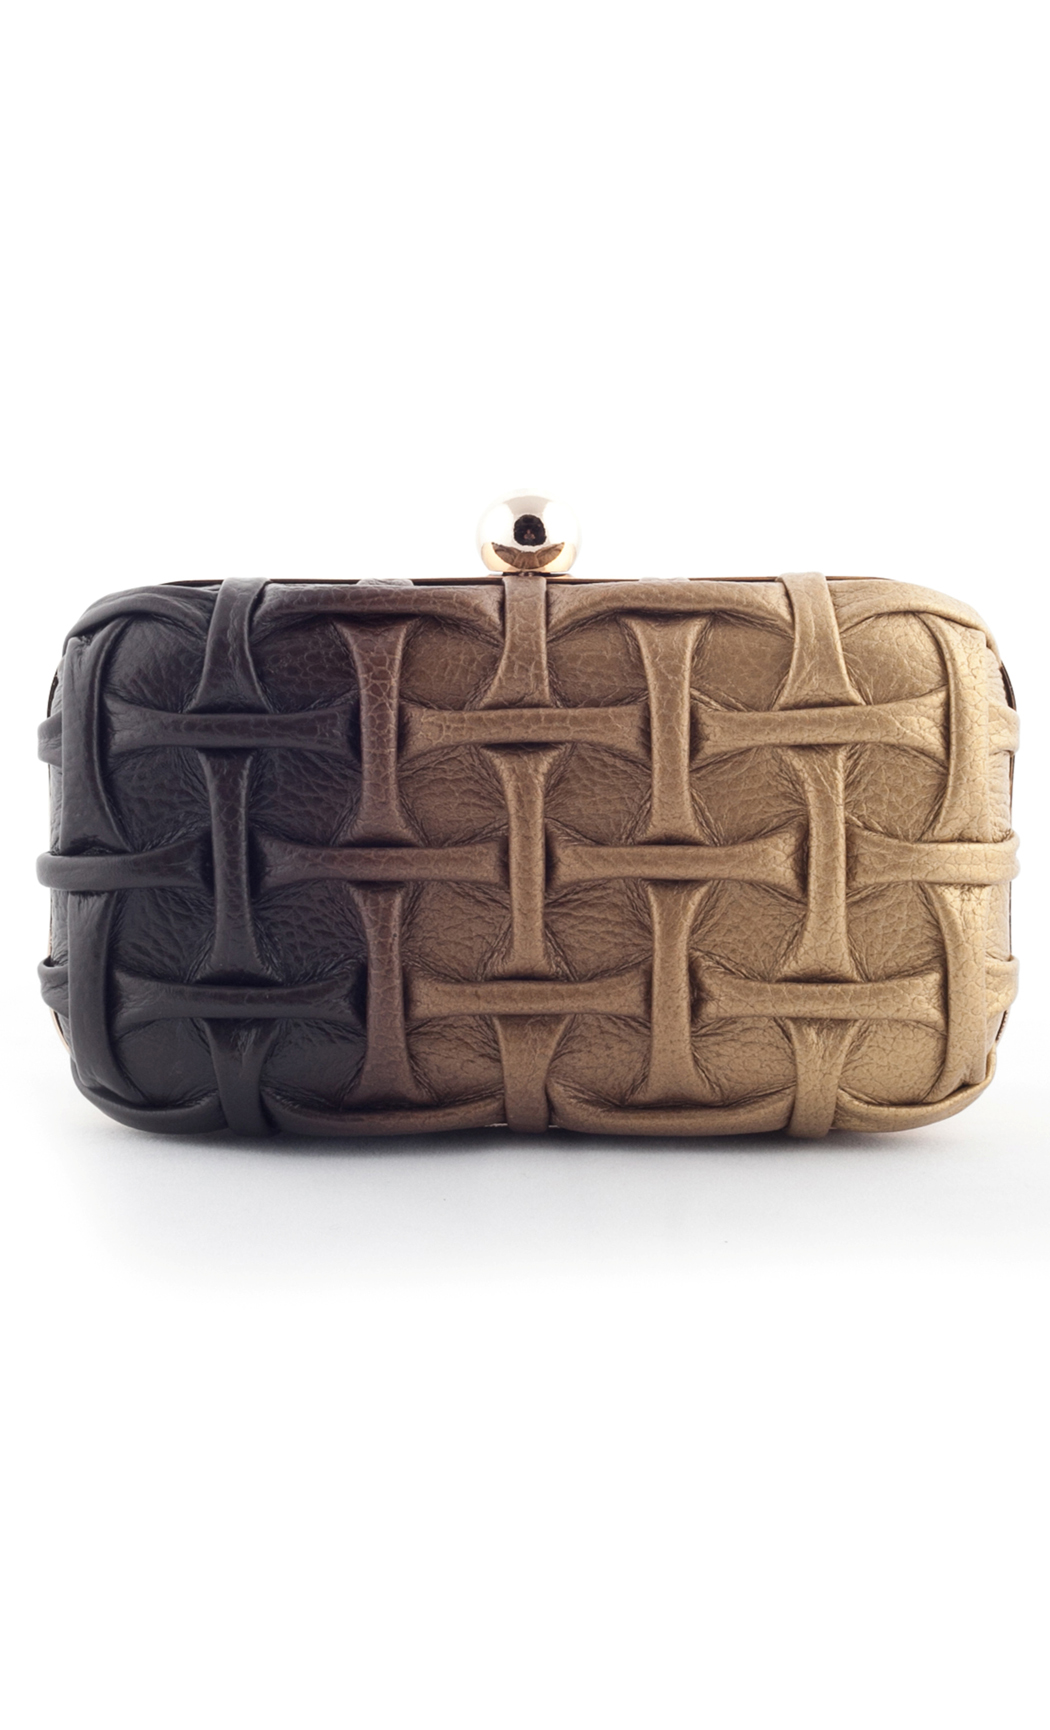 Blend T-Weave Box Clutch in Gold-Brown. Buy Online